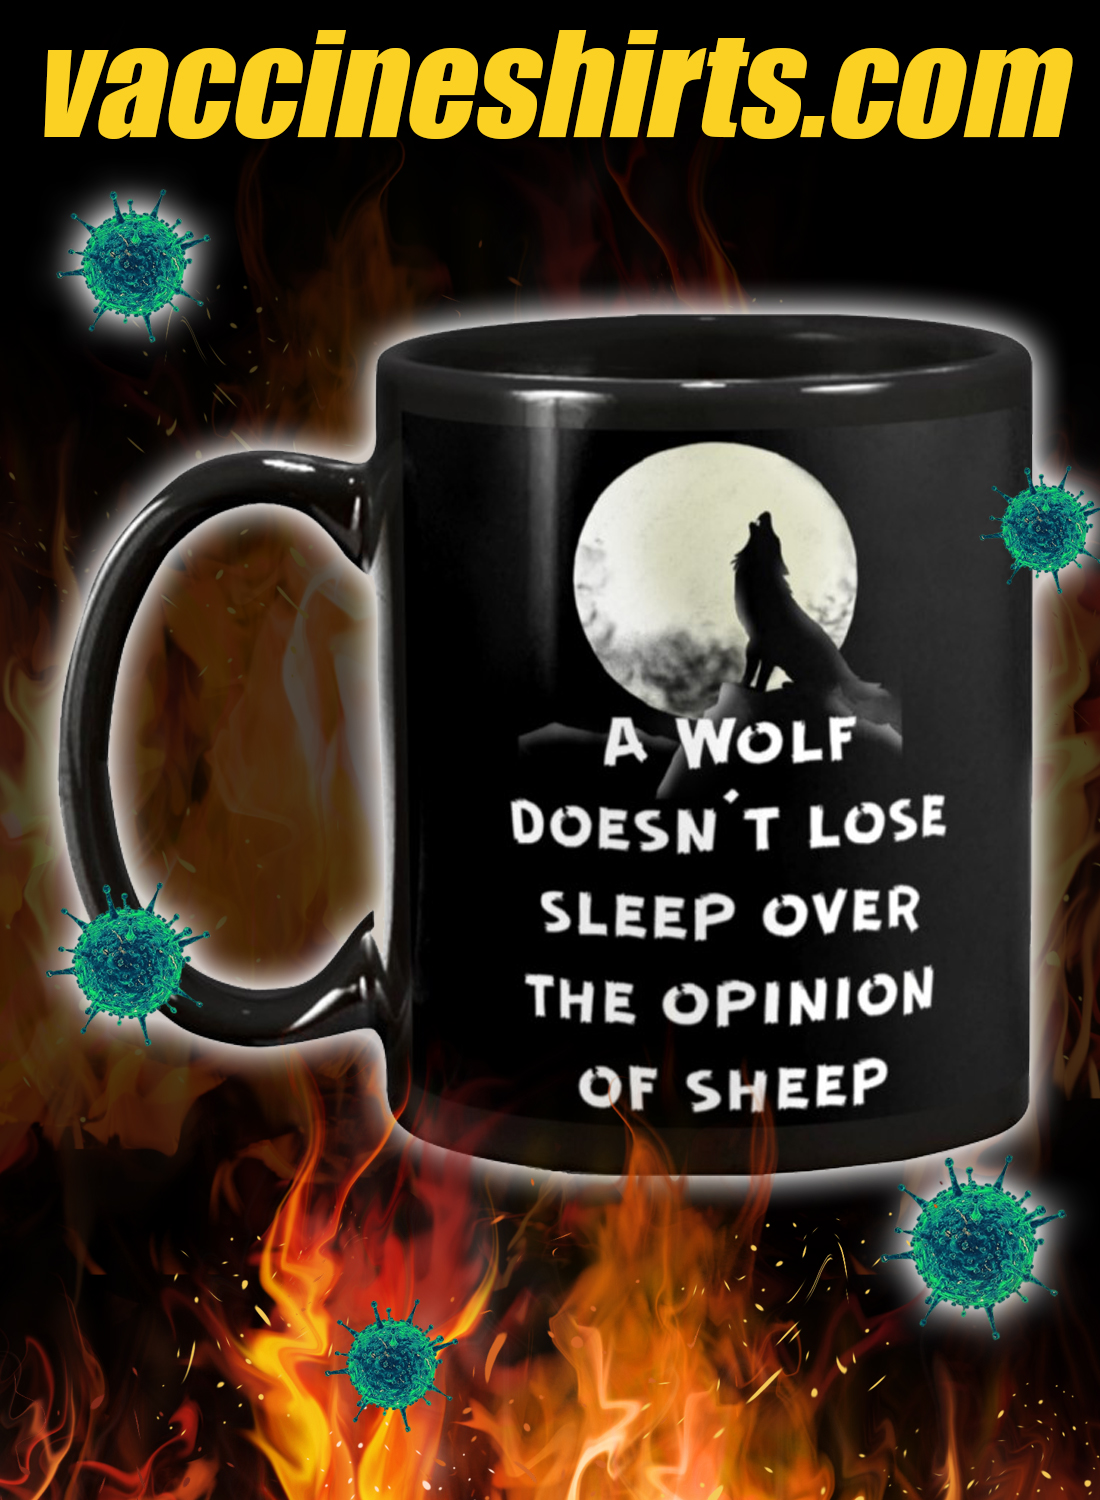 A wolf doesn't lose sleep over the opinion of sheep mug 1